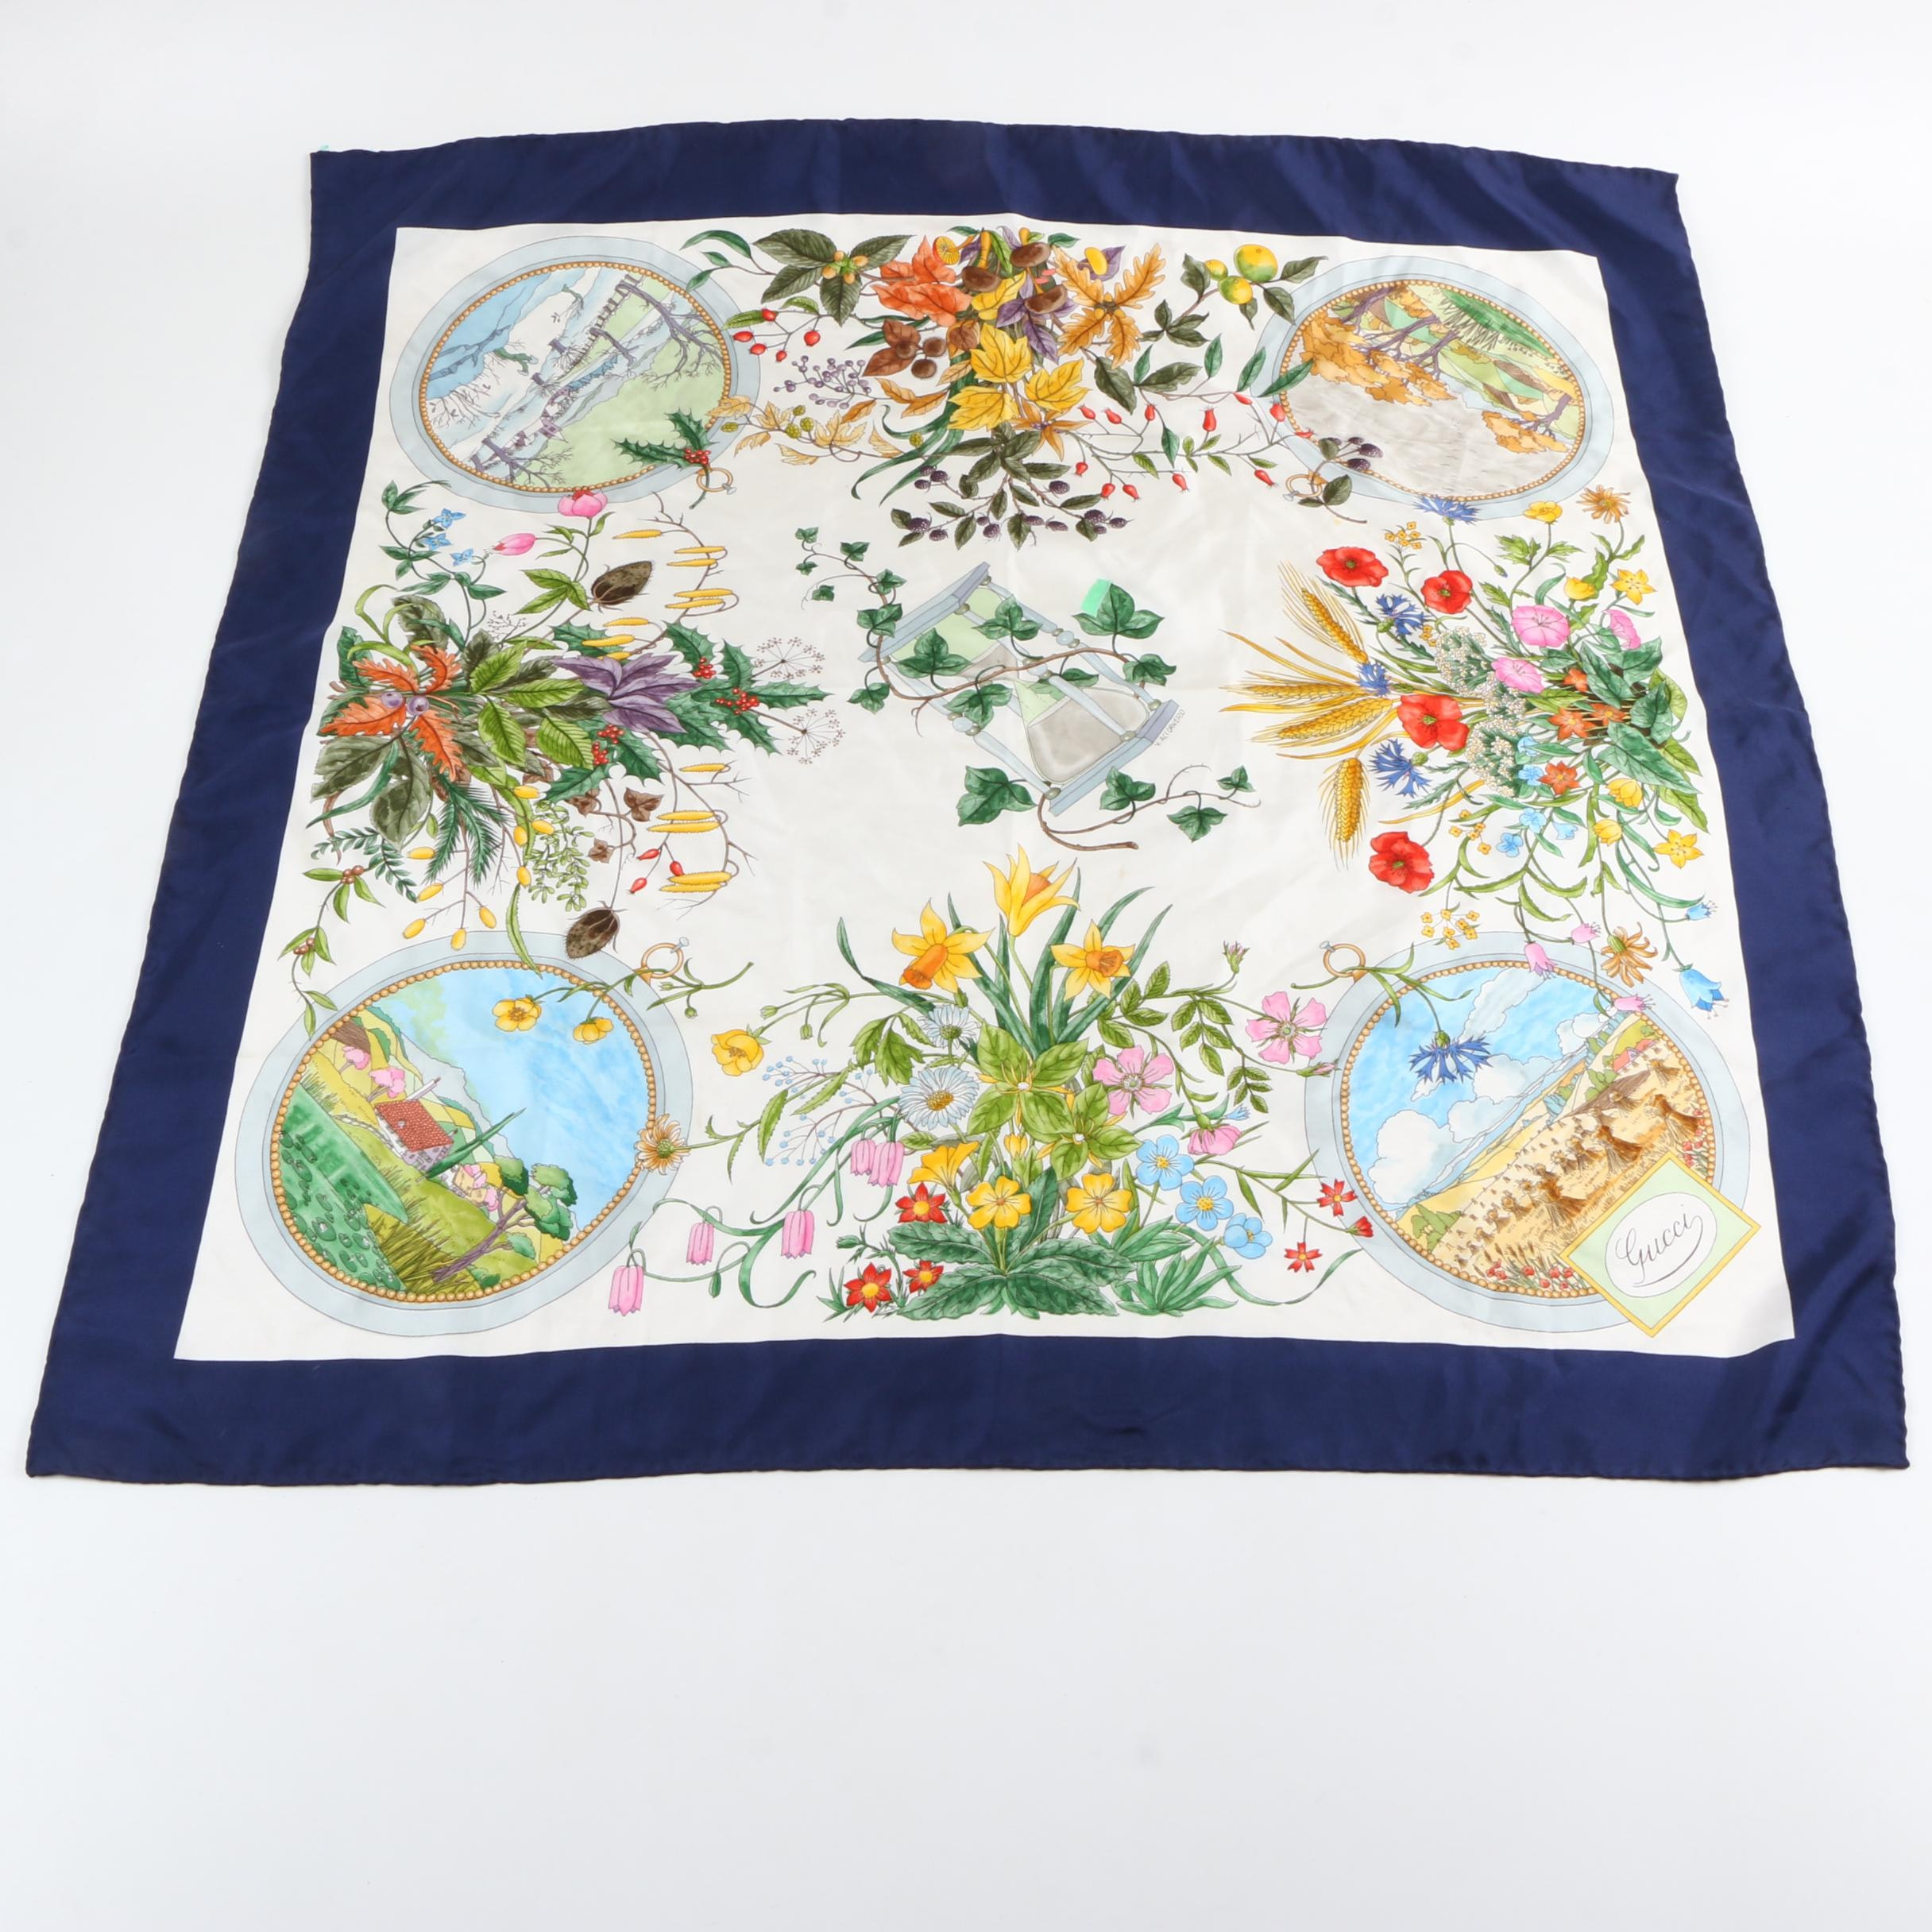 Gucci Blue and White Floral Silk Scarf